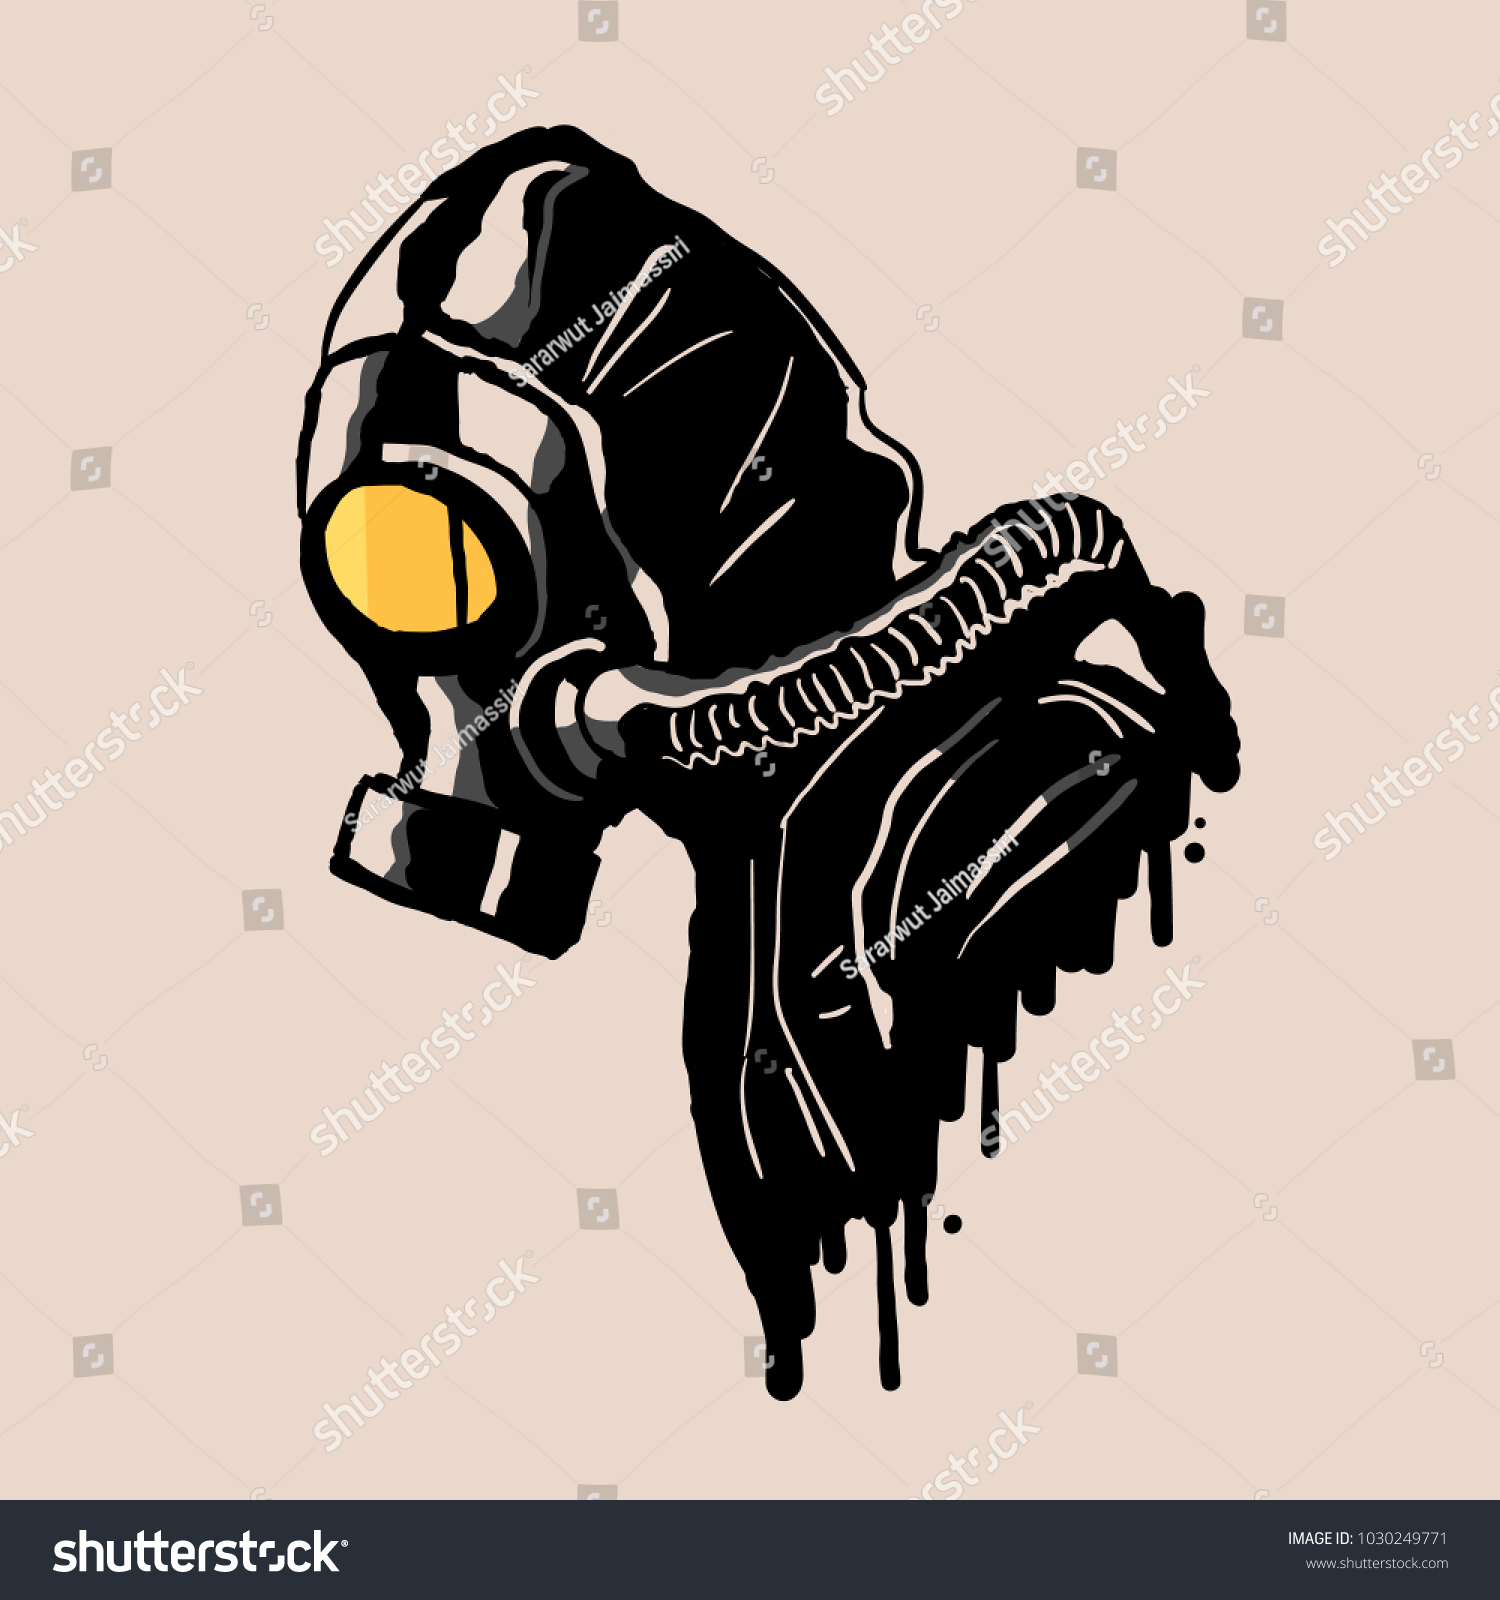 Gas mask in graffiti style vector illustration